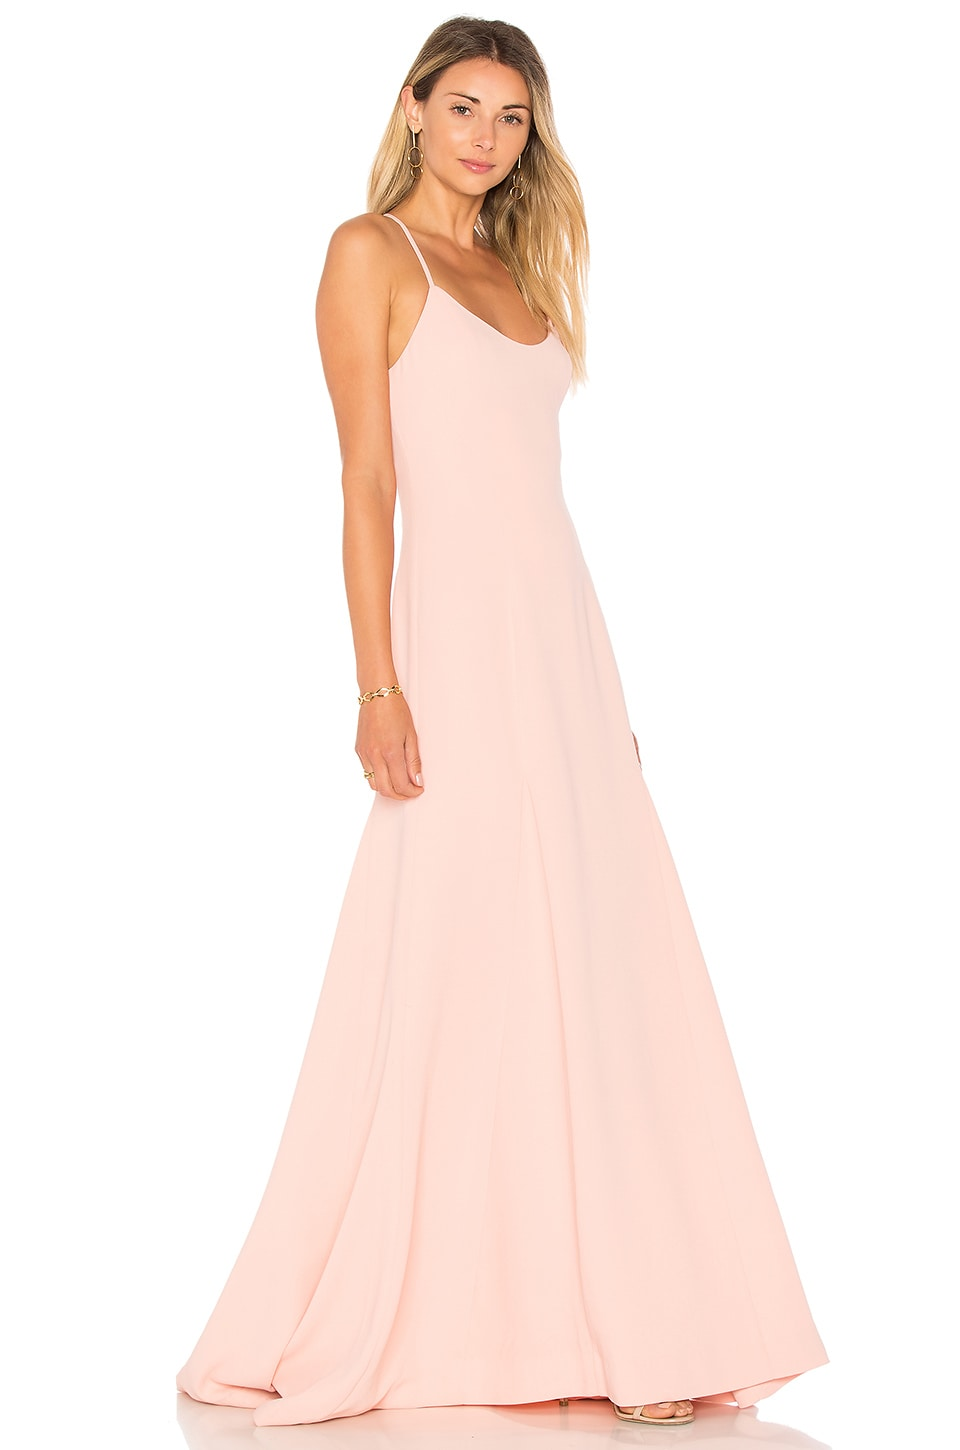 Lovers + Friends Brantford Gown in Peach